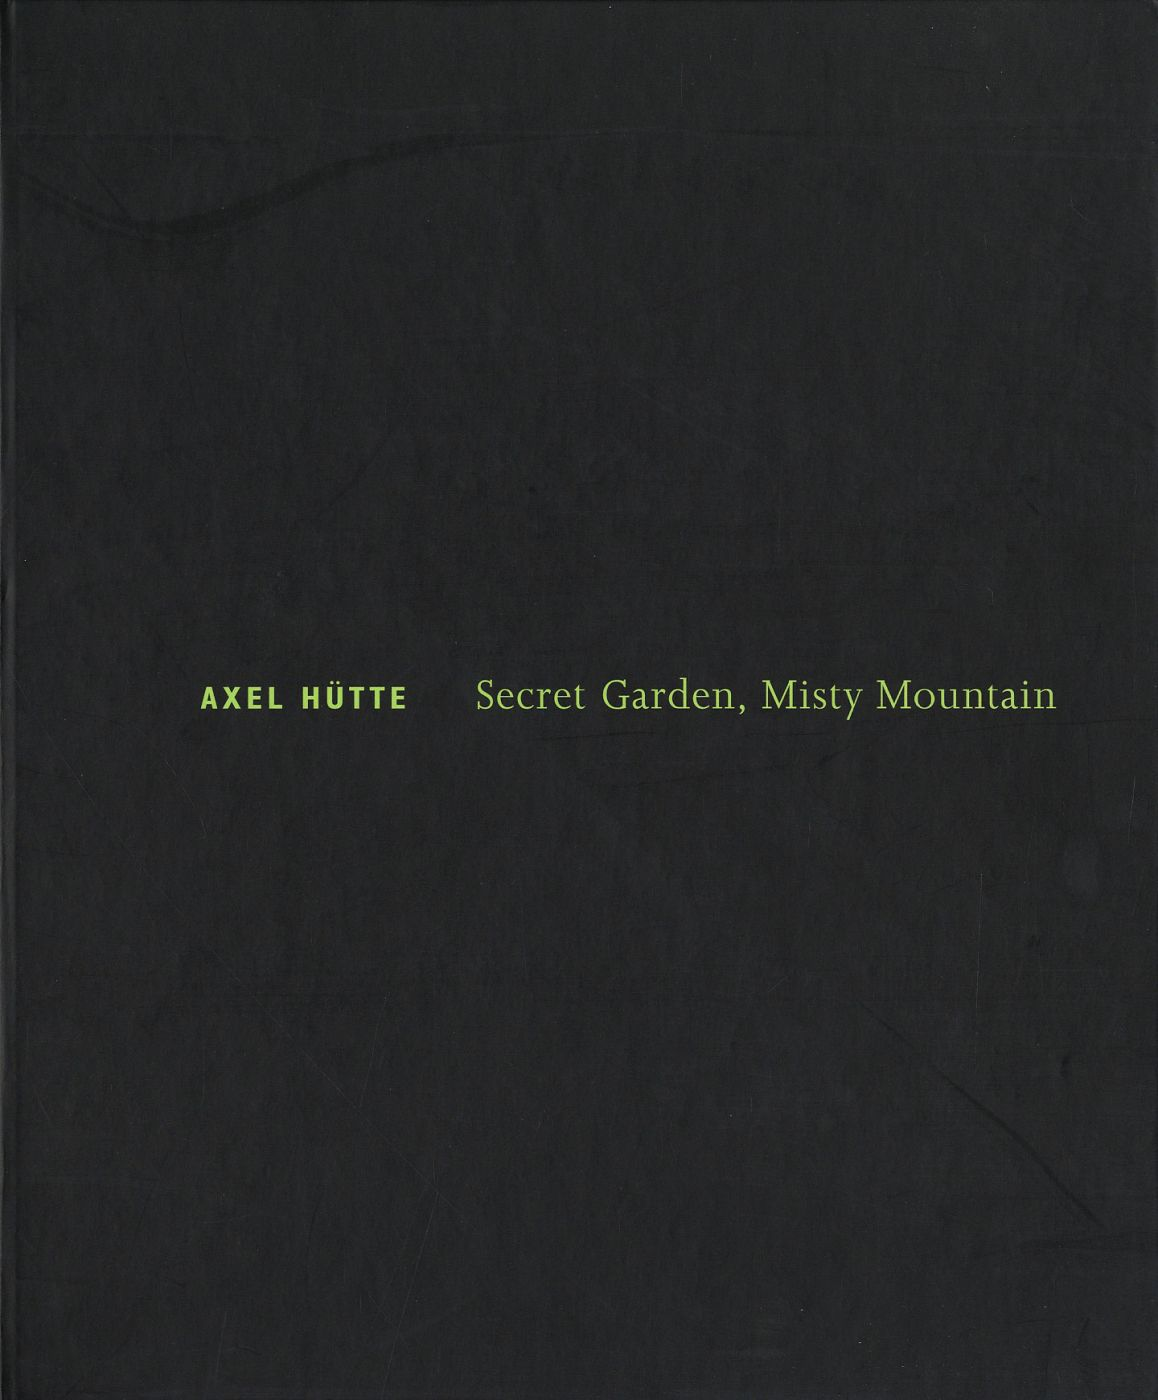 Axel Hütte: Secret Garden, Misty Mountain